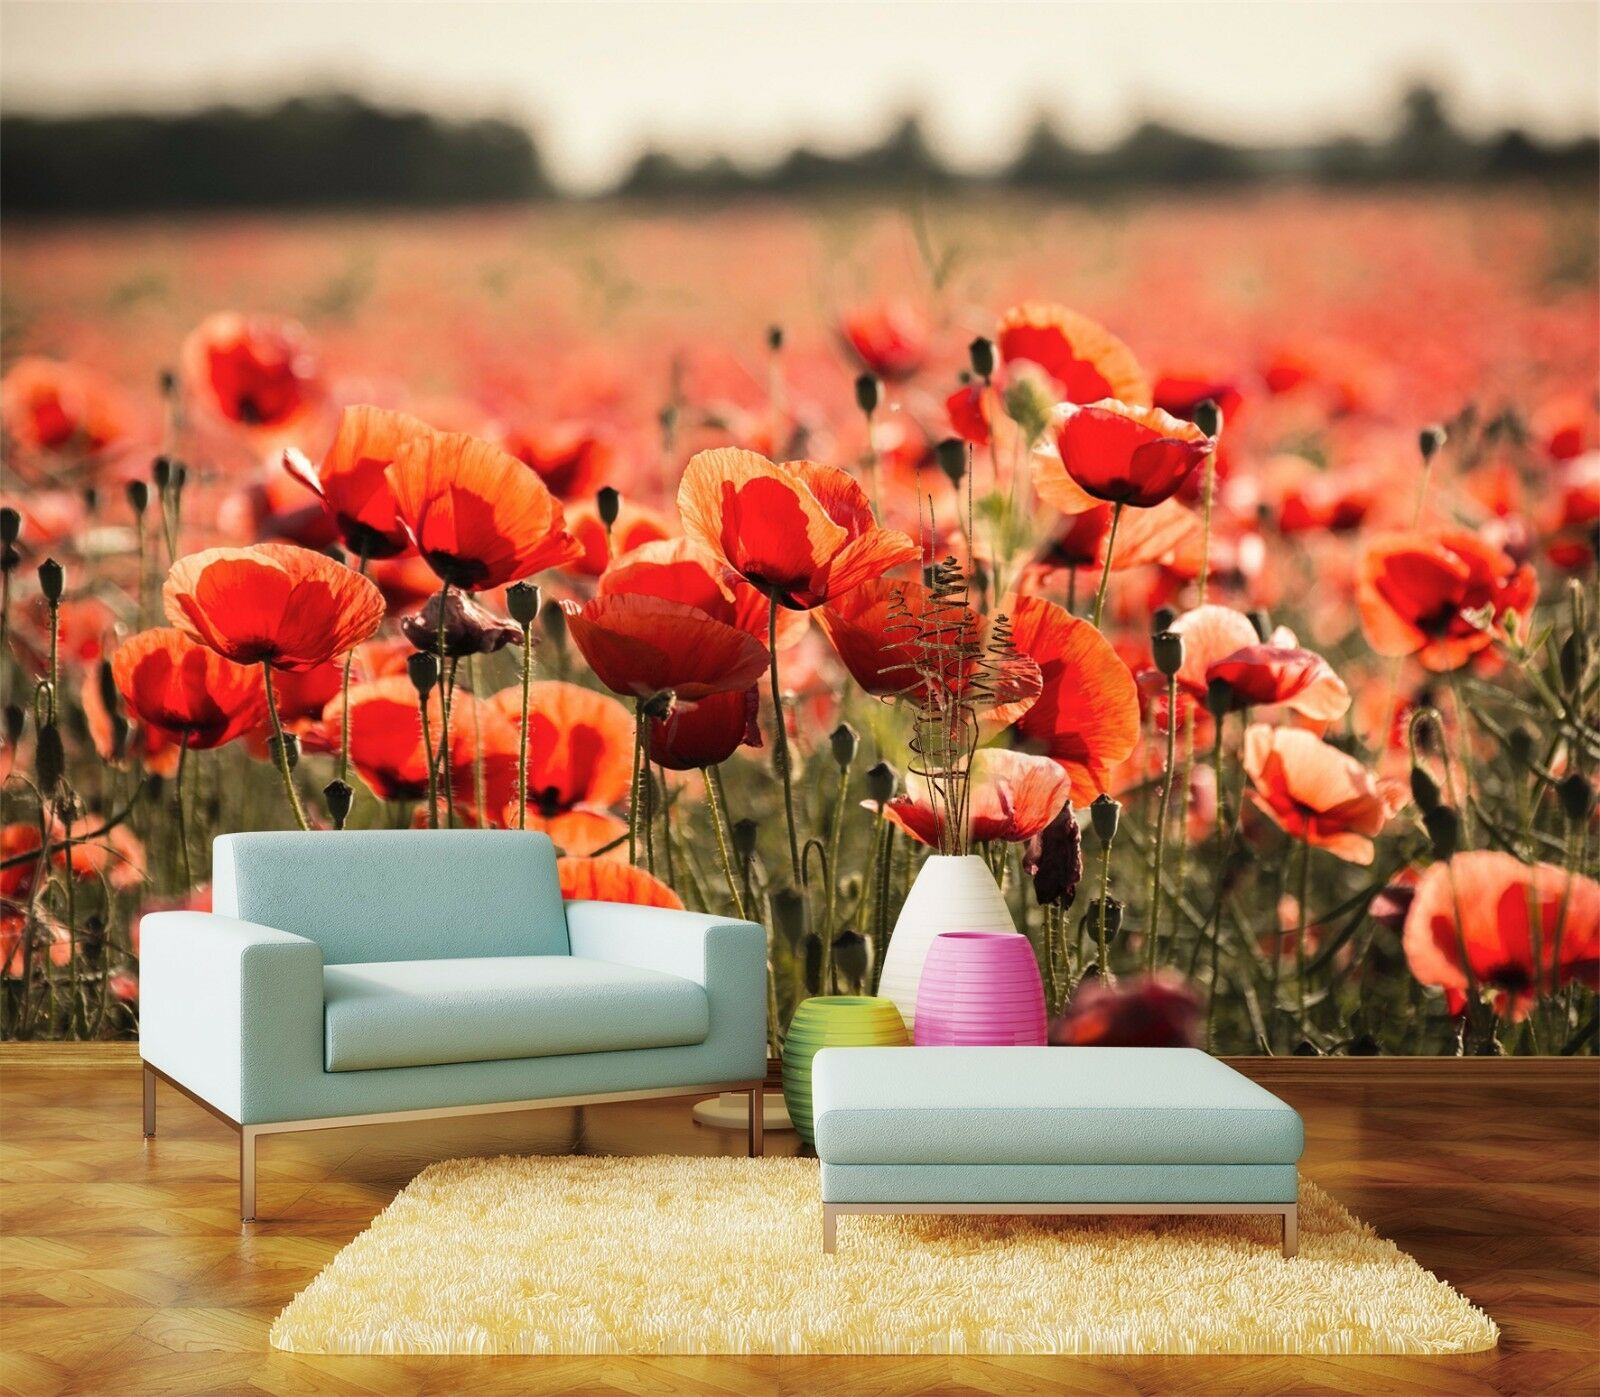 3D flower ROT ROT ROT ocean photo Wall Paper Print Decal Wall Deco Indoor wall Mural 2915b8